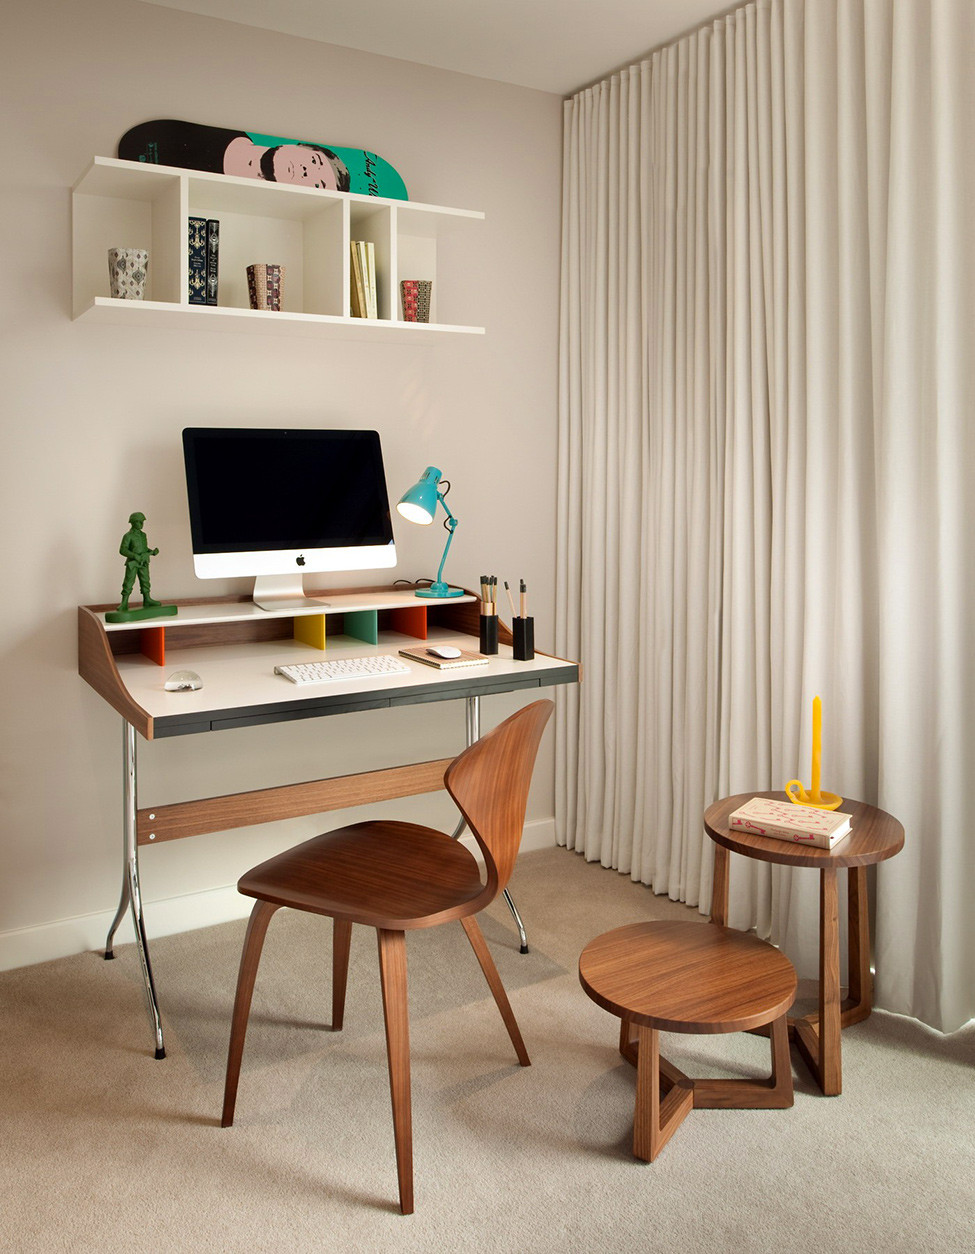 Best ideas about Small Office Table . Save or Pin Make The Small fice Desk as Superb as you Want MidCityEast Now.